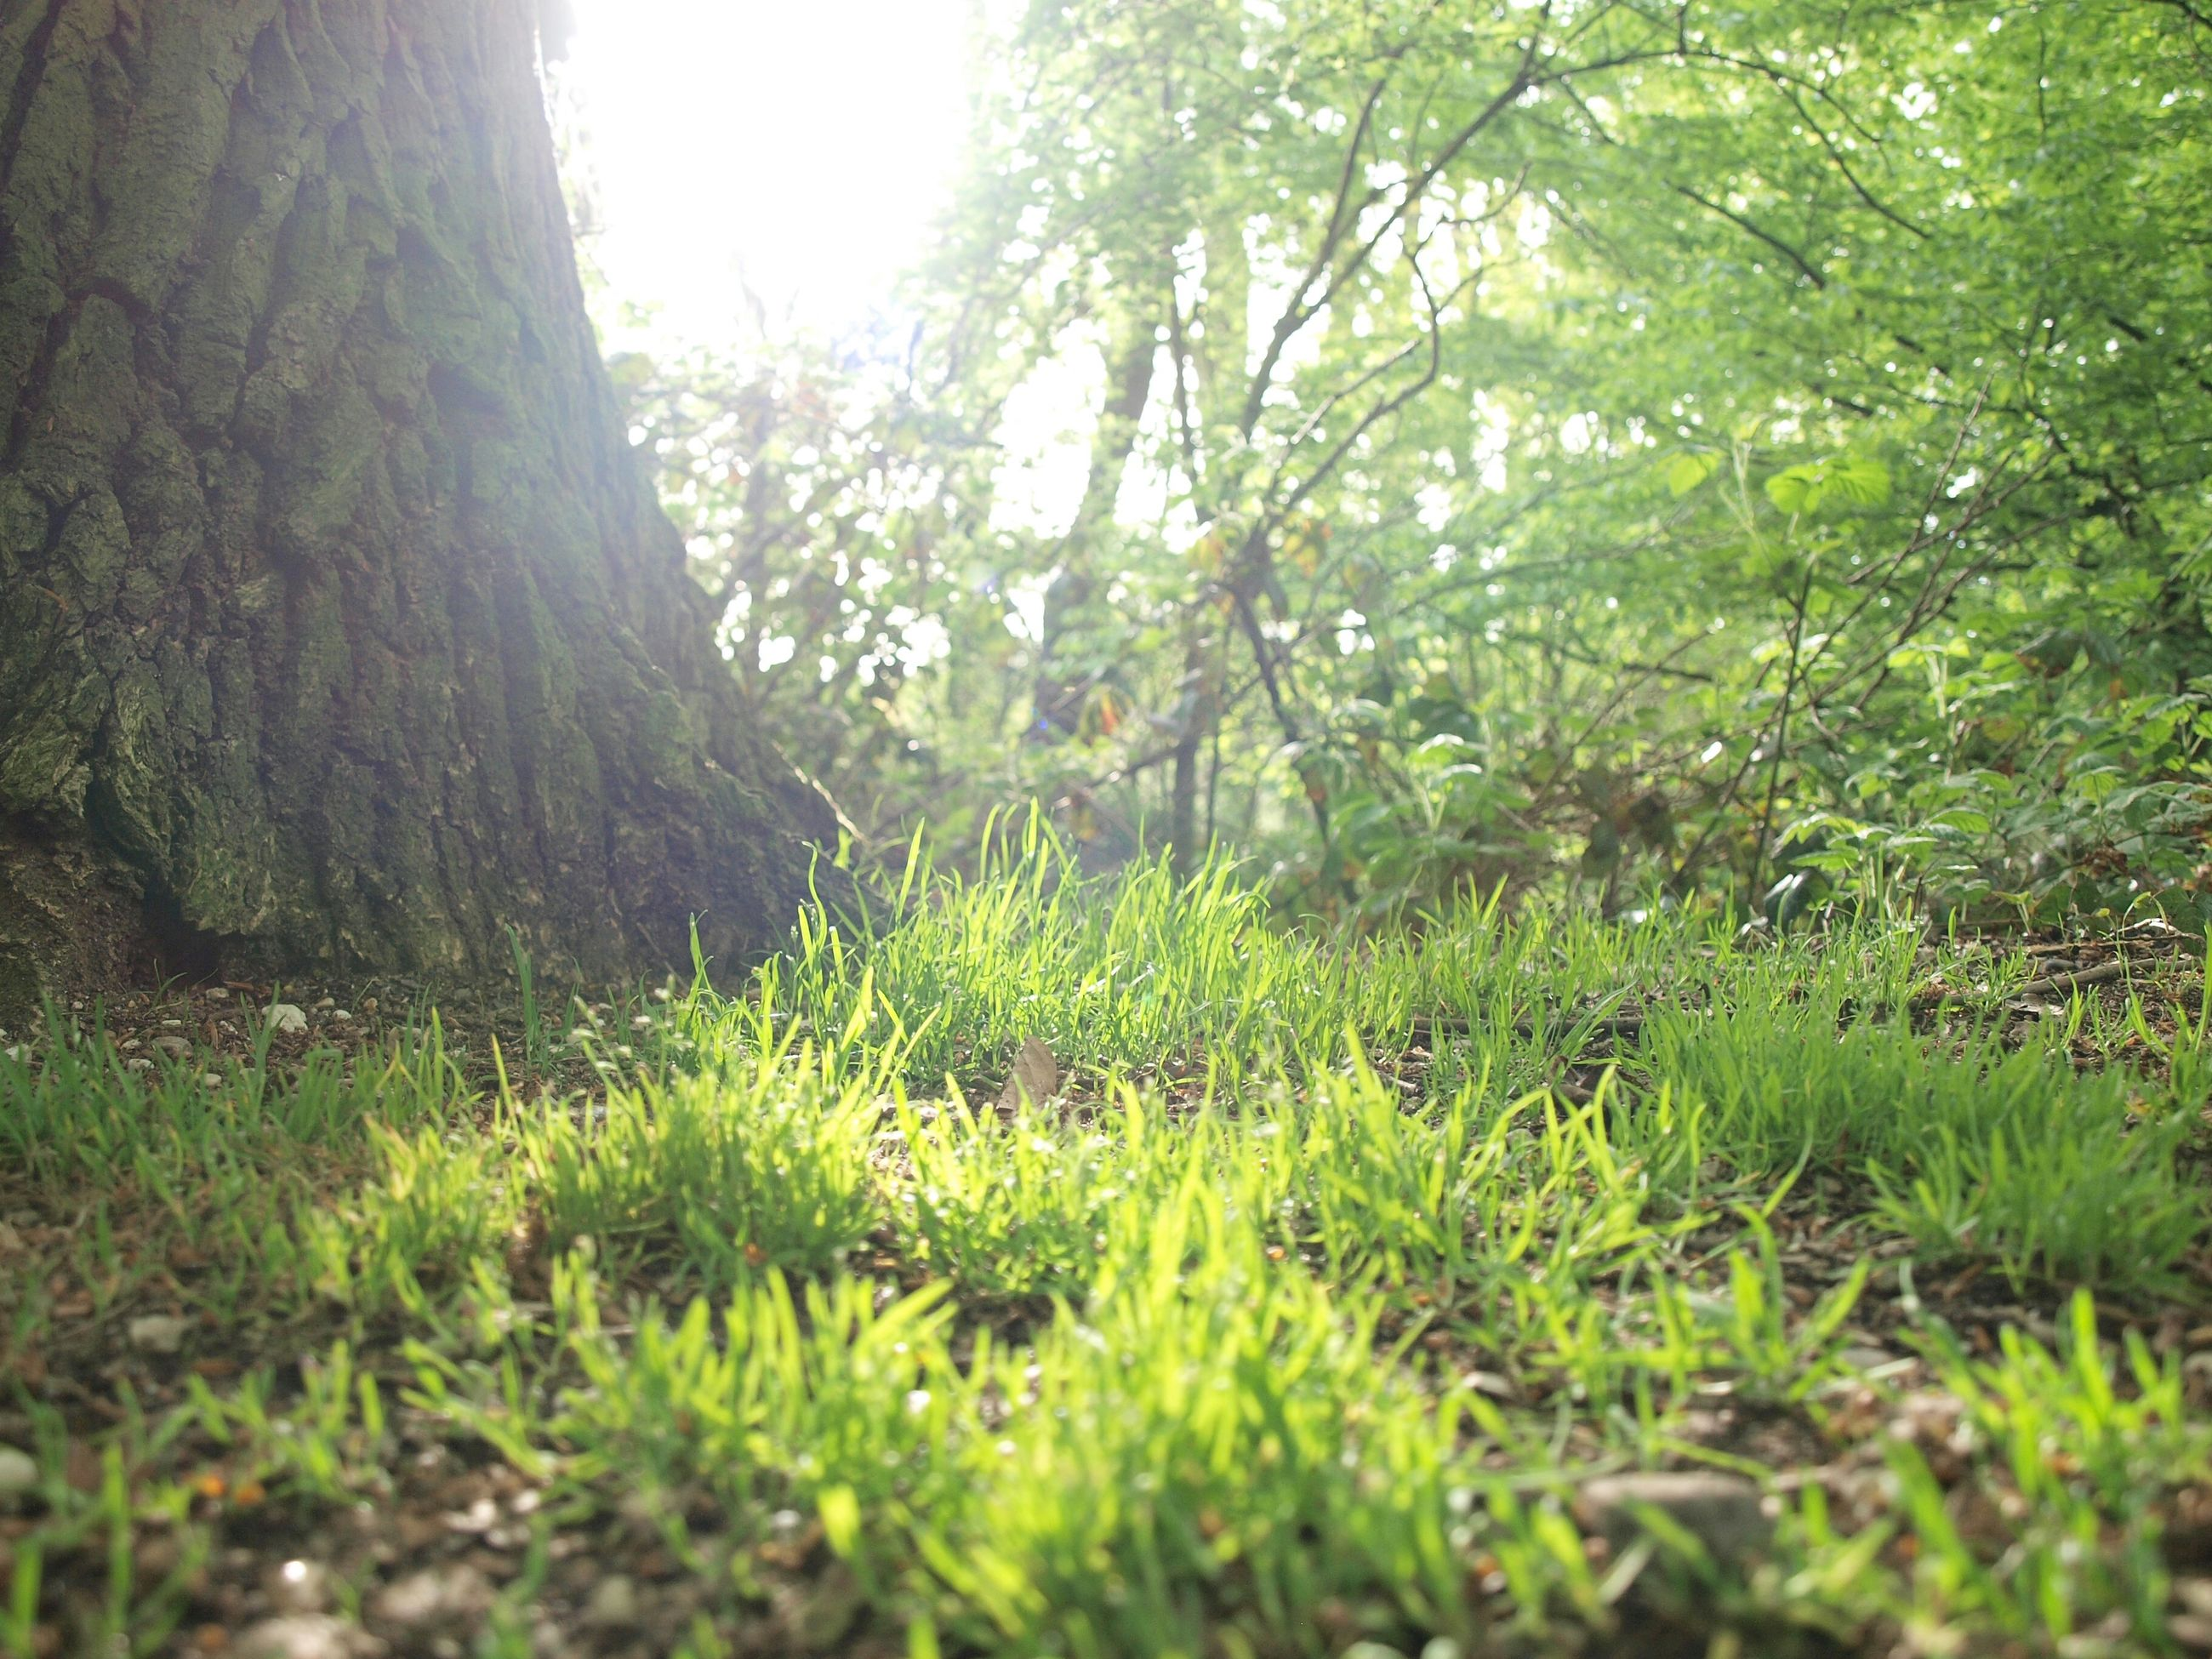 tree, growth, grass, green color, tranquility, sunlight, nature, field, beauty in nature, tranquil scene, plant, grassy, day, no people, clear sky, outdoors, green, landscape, selective focus, lens flare